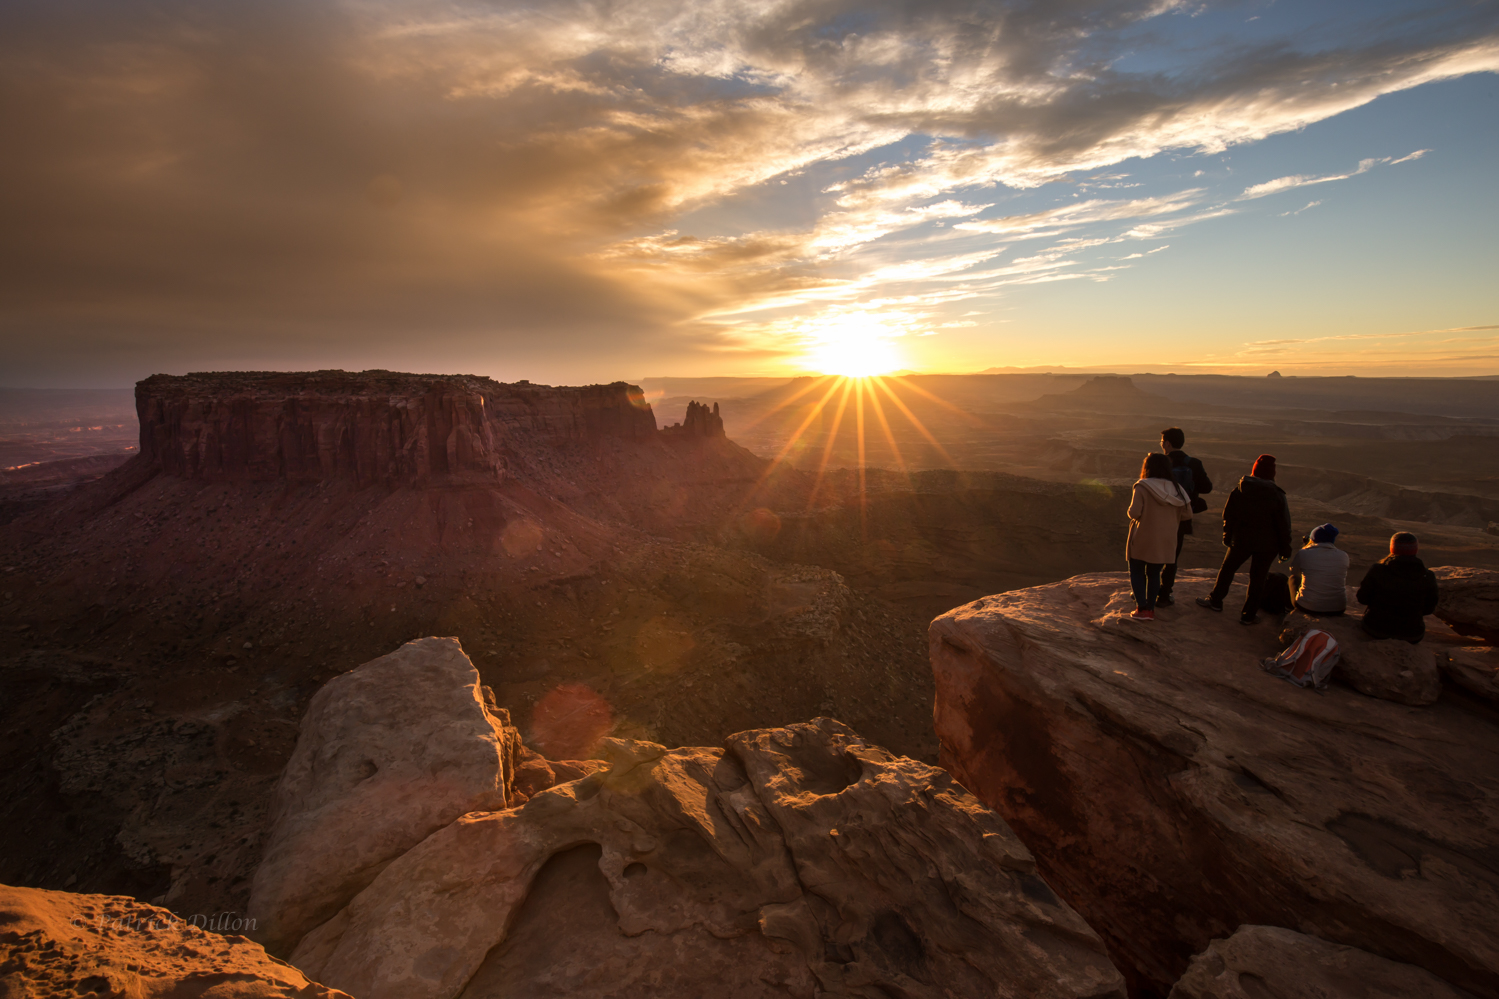 Canyonlands NP Sunset with People